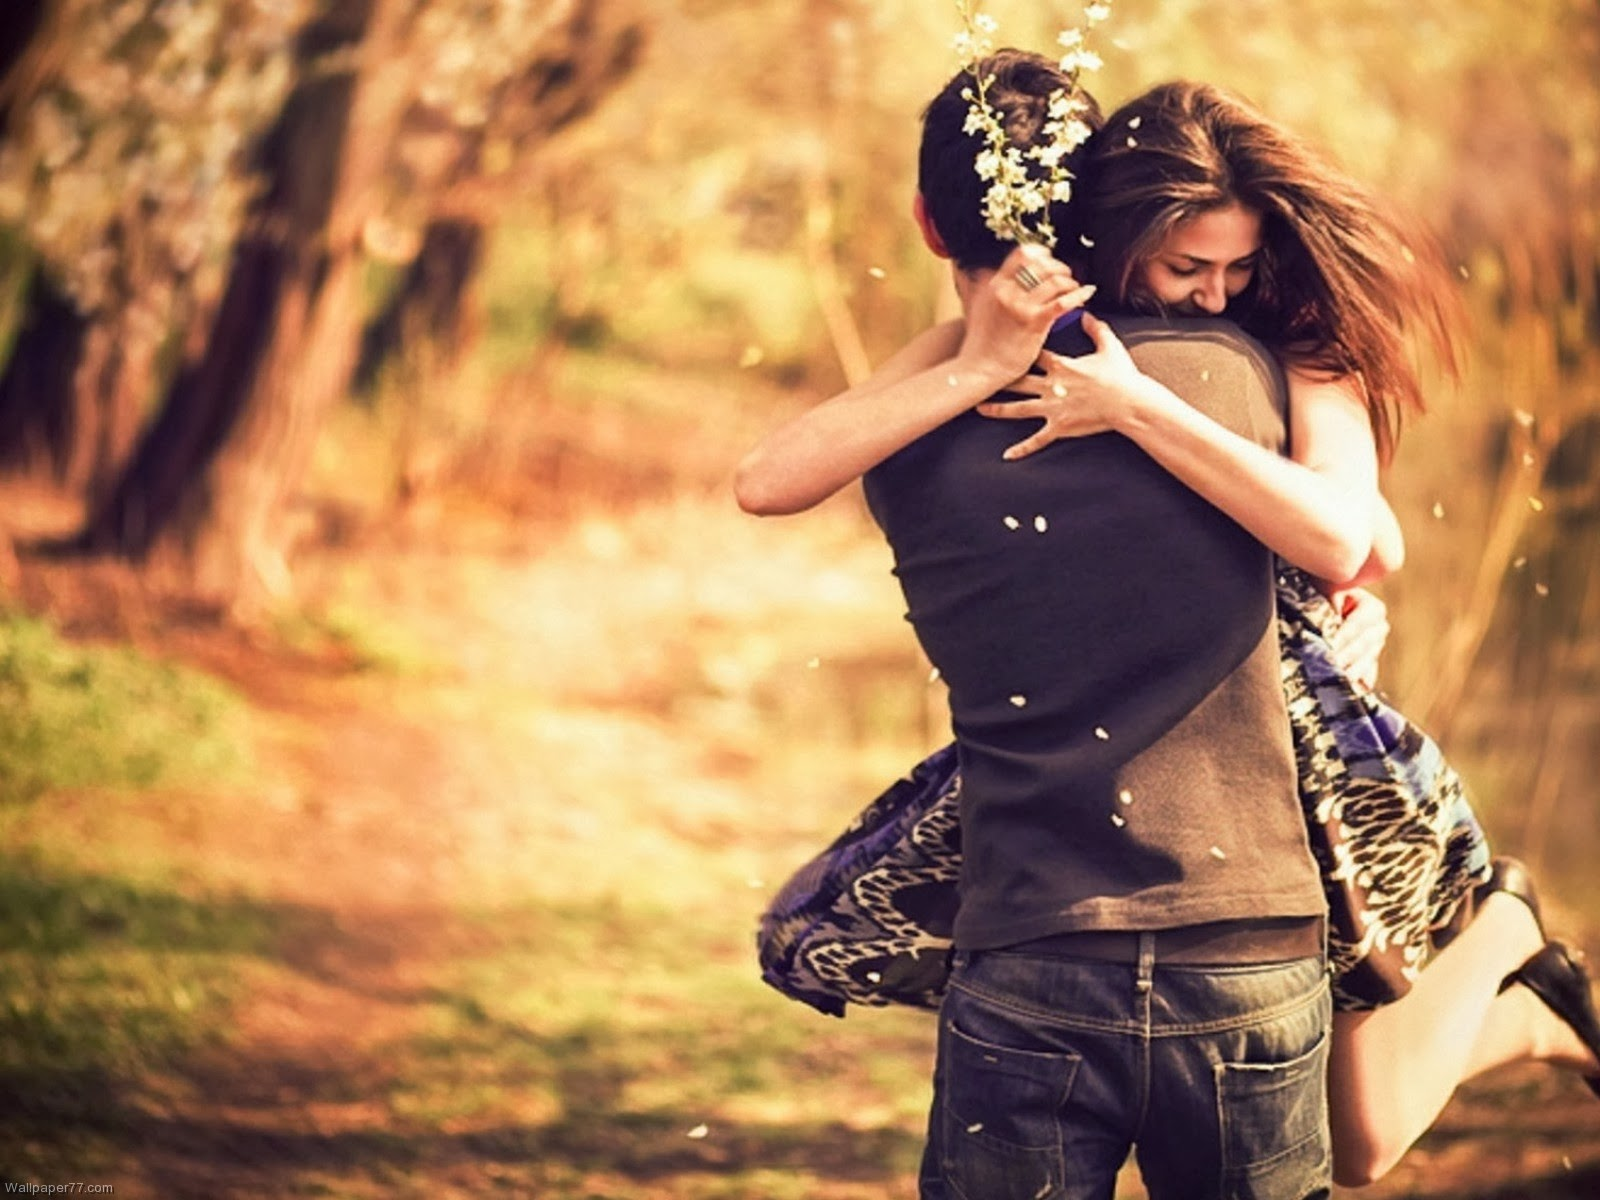 Romantic Love Wallpapers HD